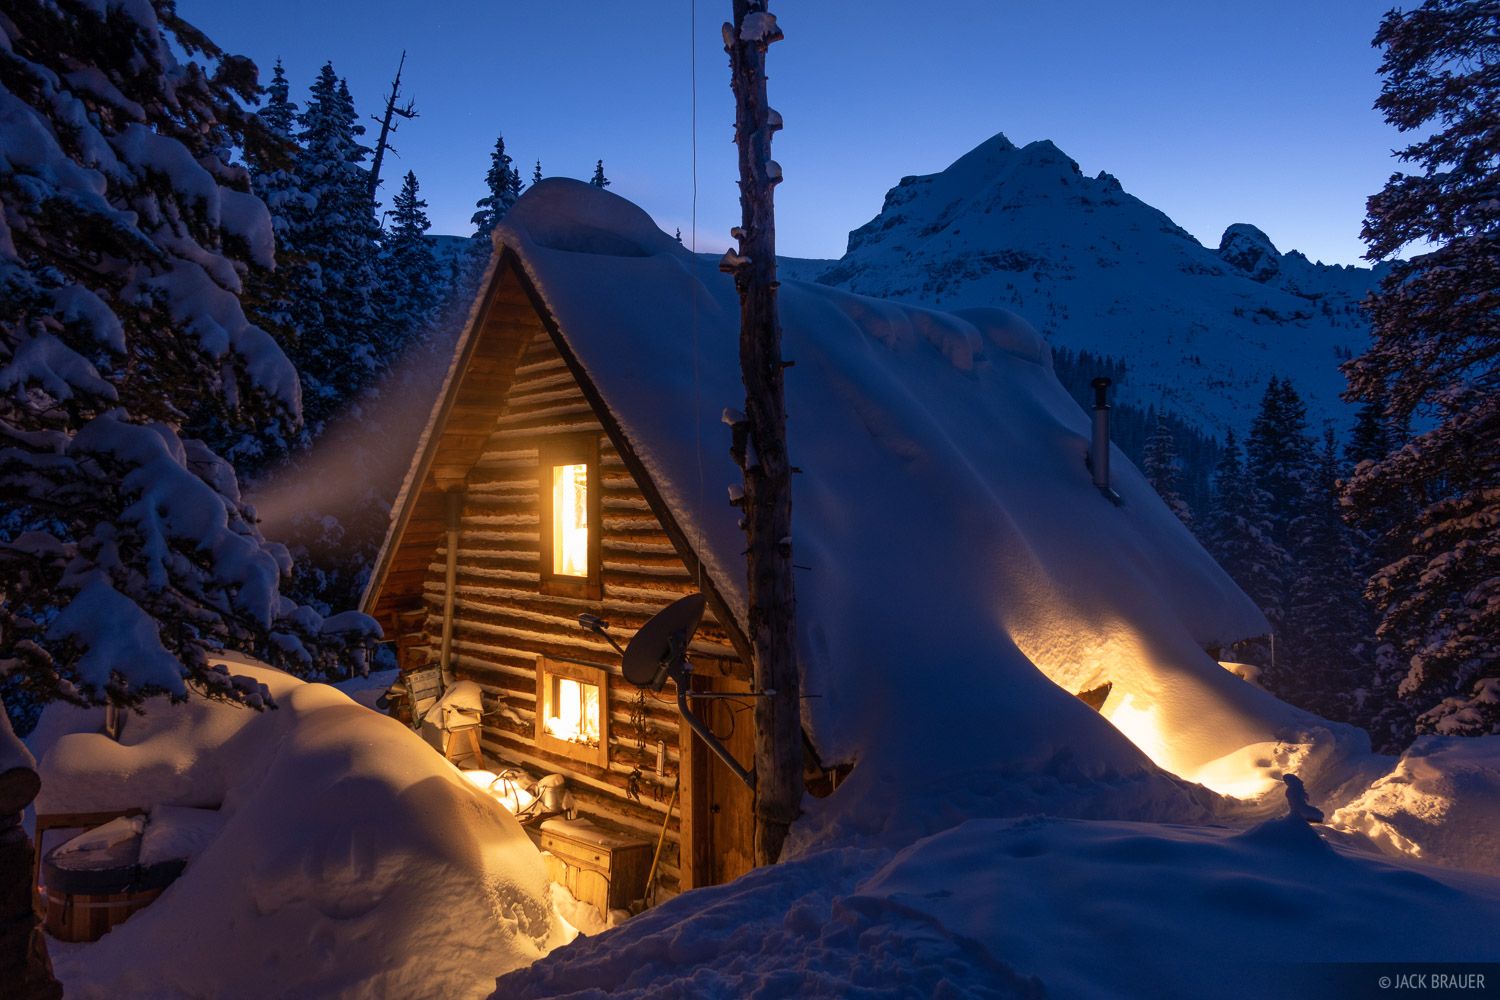 Colorado, Mount Hayden Backcountry Lodge, San Juan Mountains, United States Mountain, cabin, photo